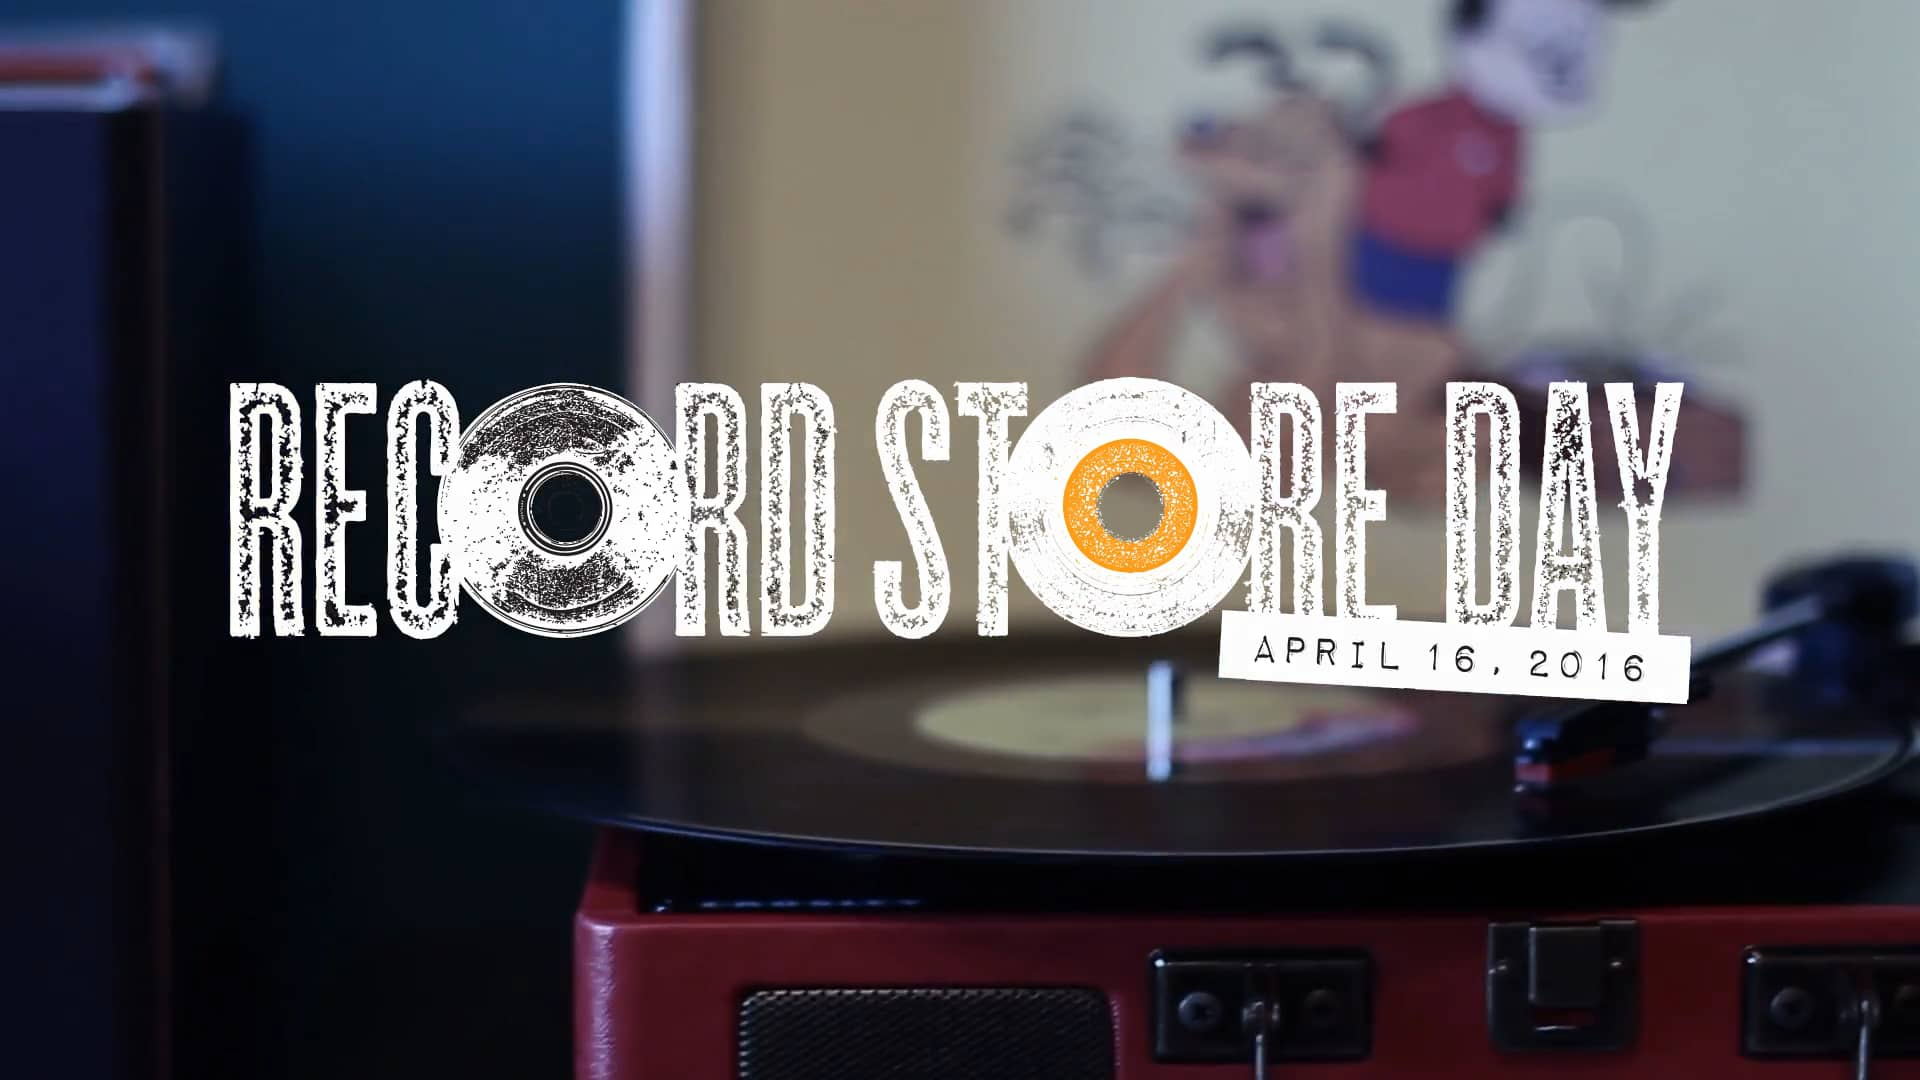 Celebrate Record Store Day The Nordic Way!